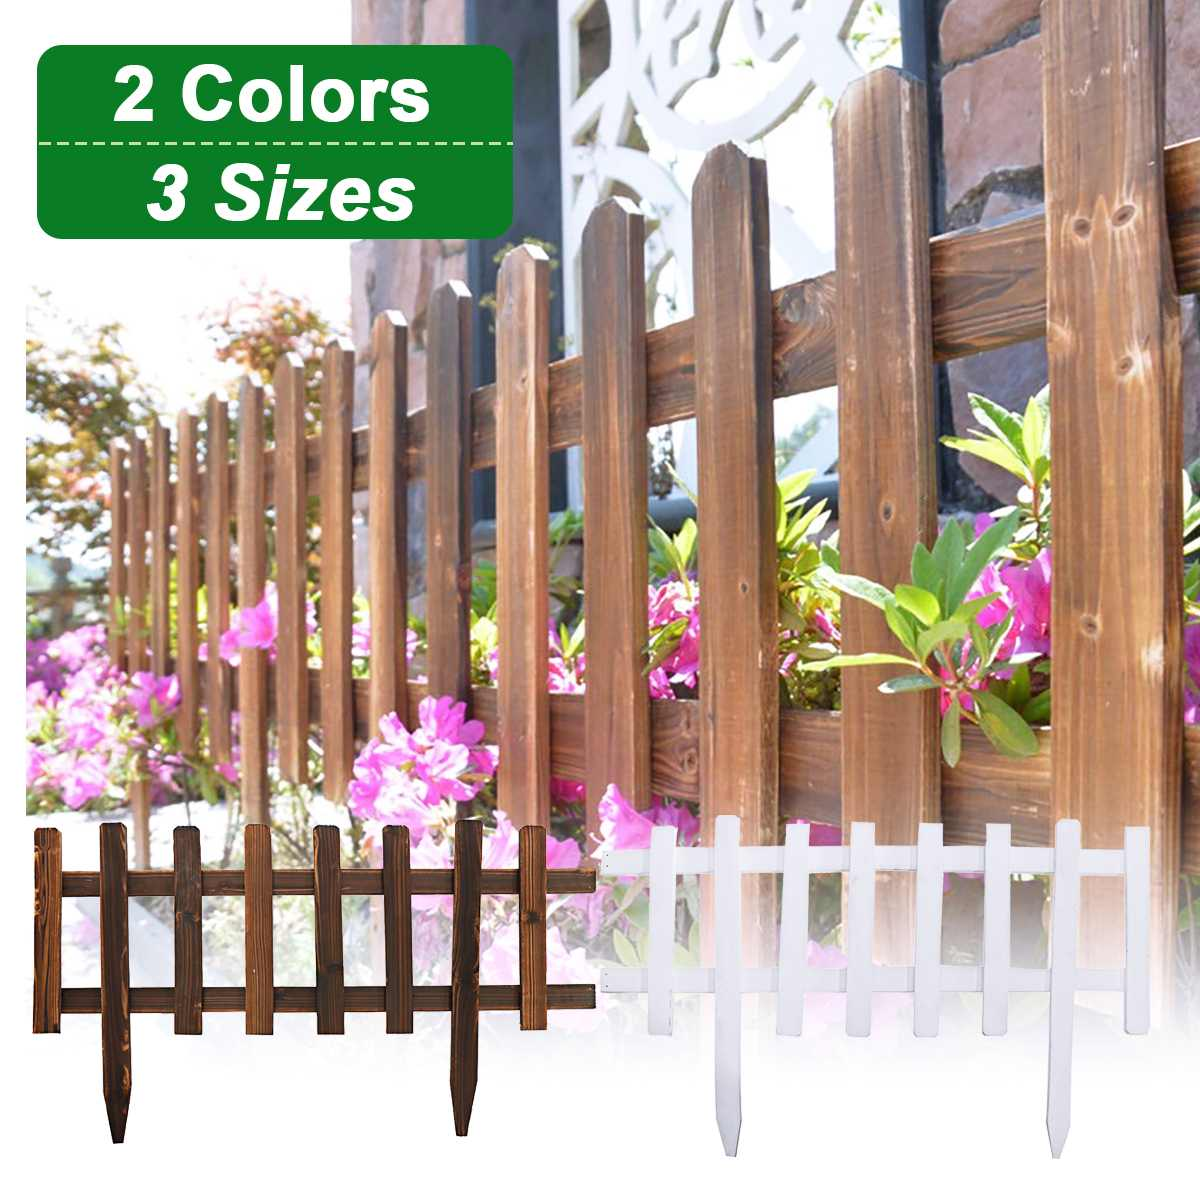 China Fir Garden Fence Easy Assemble European Style Insert Ground Type Wooden Fences for Countryyard Decoration